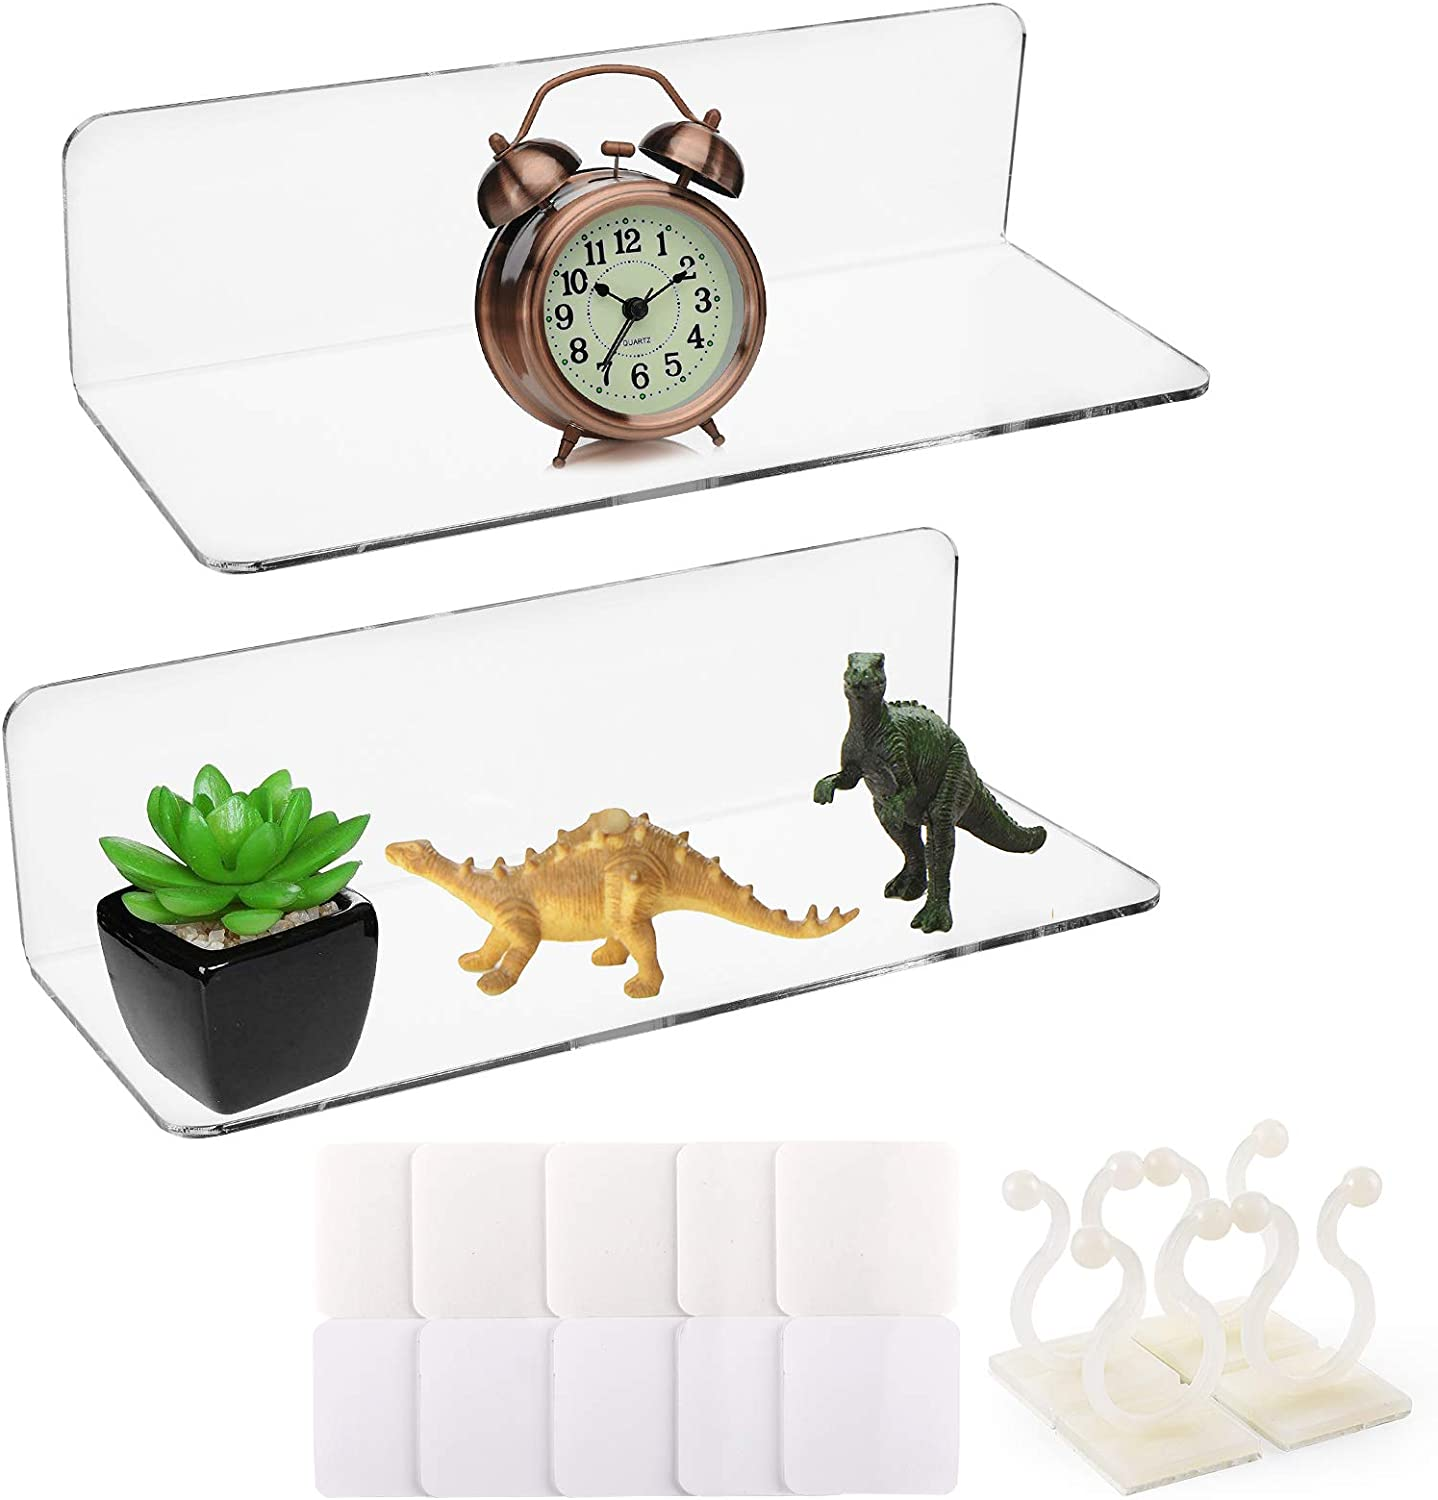 Tebery 2 Super Special SALE held Pack Clear Acrylic Floating Mounted Wall with Max 62% OFF Shelves C